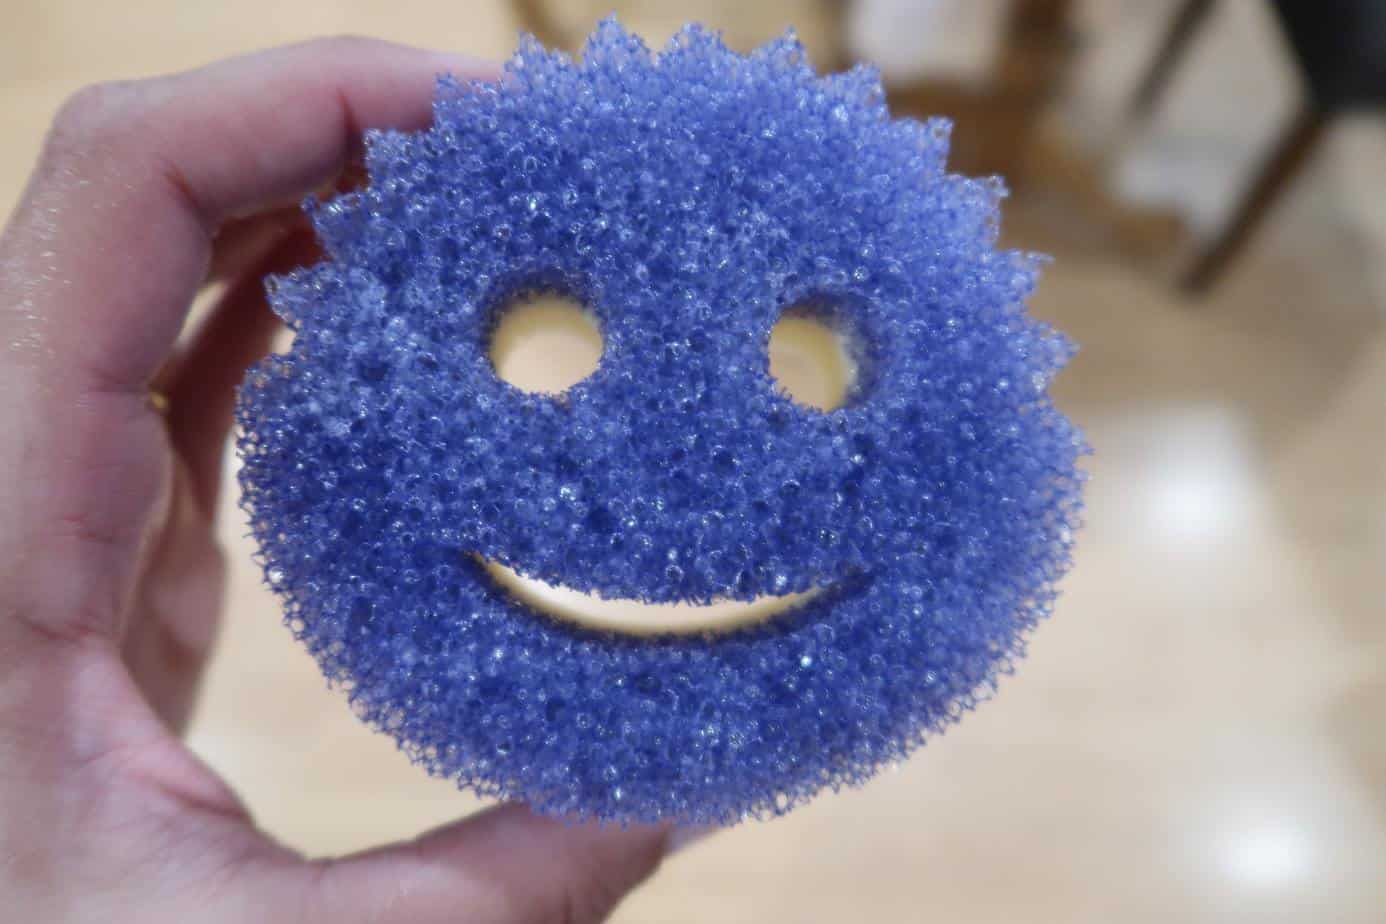 scrub-mommy-scrub-daddy-sponge-daddy-reviews